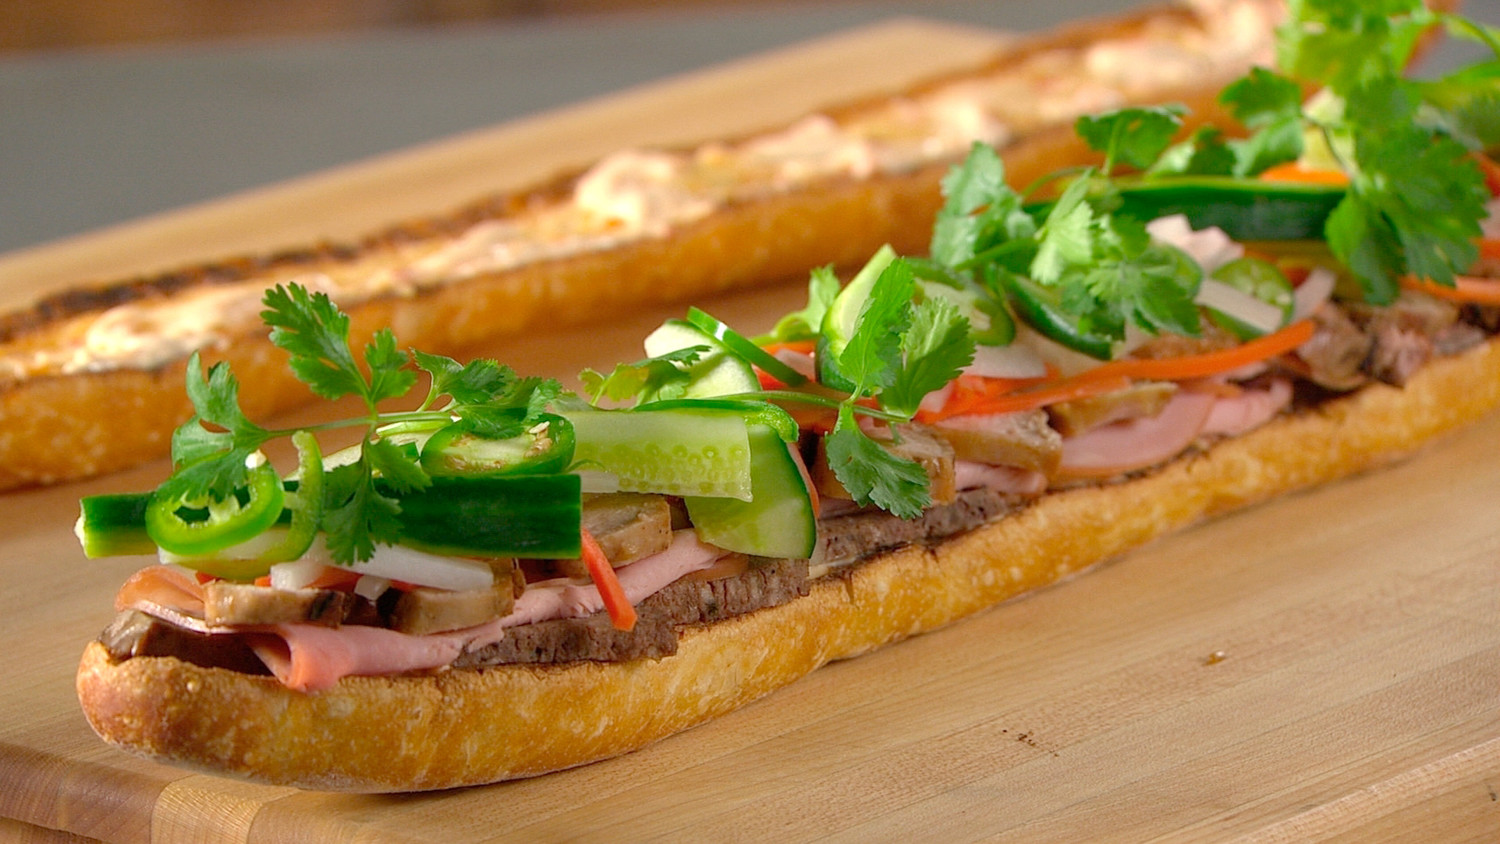 Banh mi sandwich recipe martha stewart for Fish table sweepstakes near me